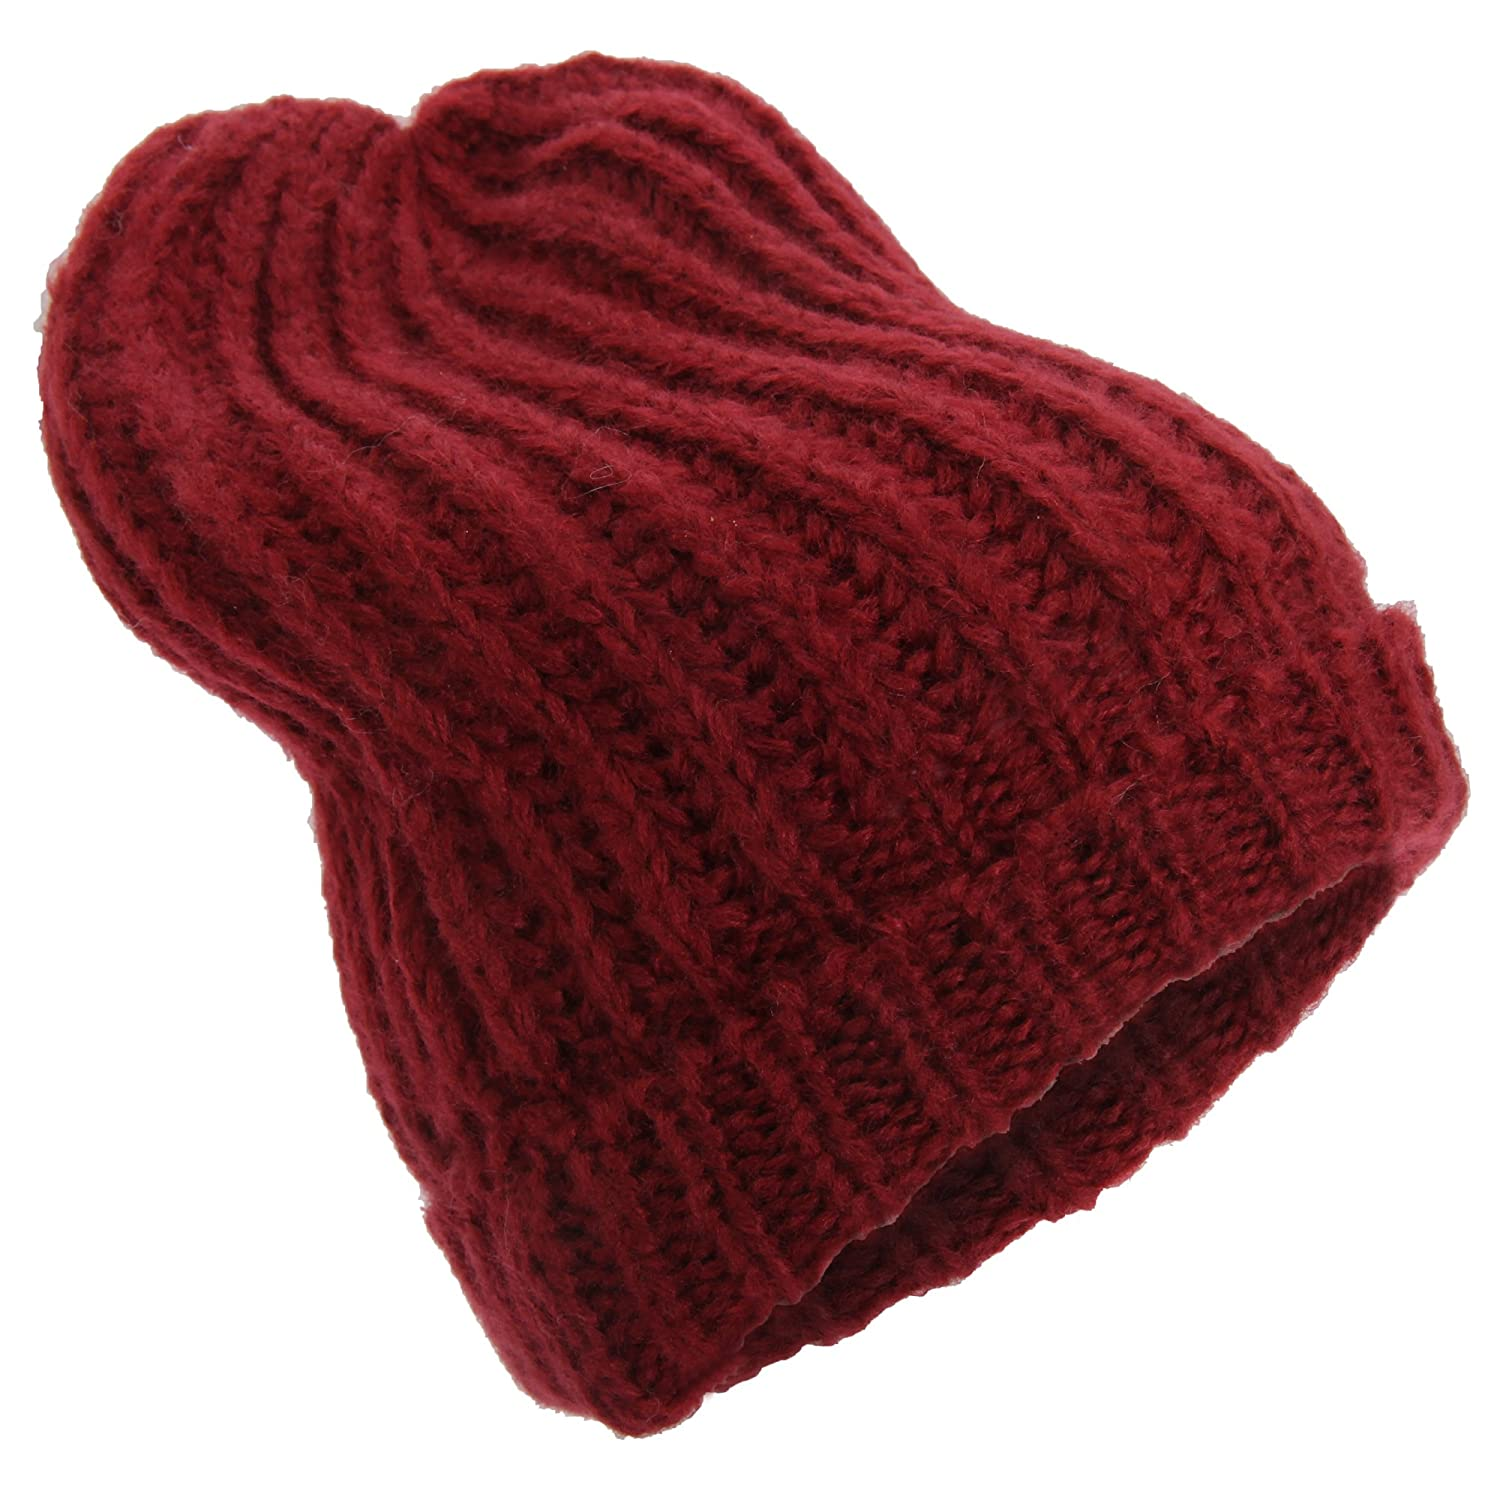 f0a3938e570 Universal Textiles Womens Ladies Knitted Winter Slouch Beanie Hat (One Size)  (Burgundy)  Amazon.co.uk  Clothing